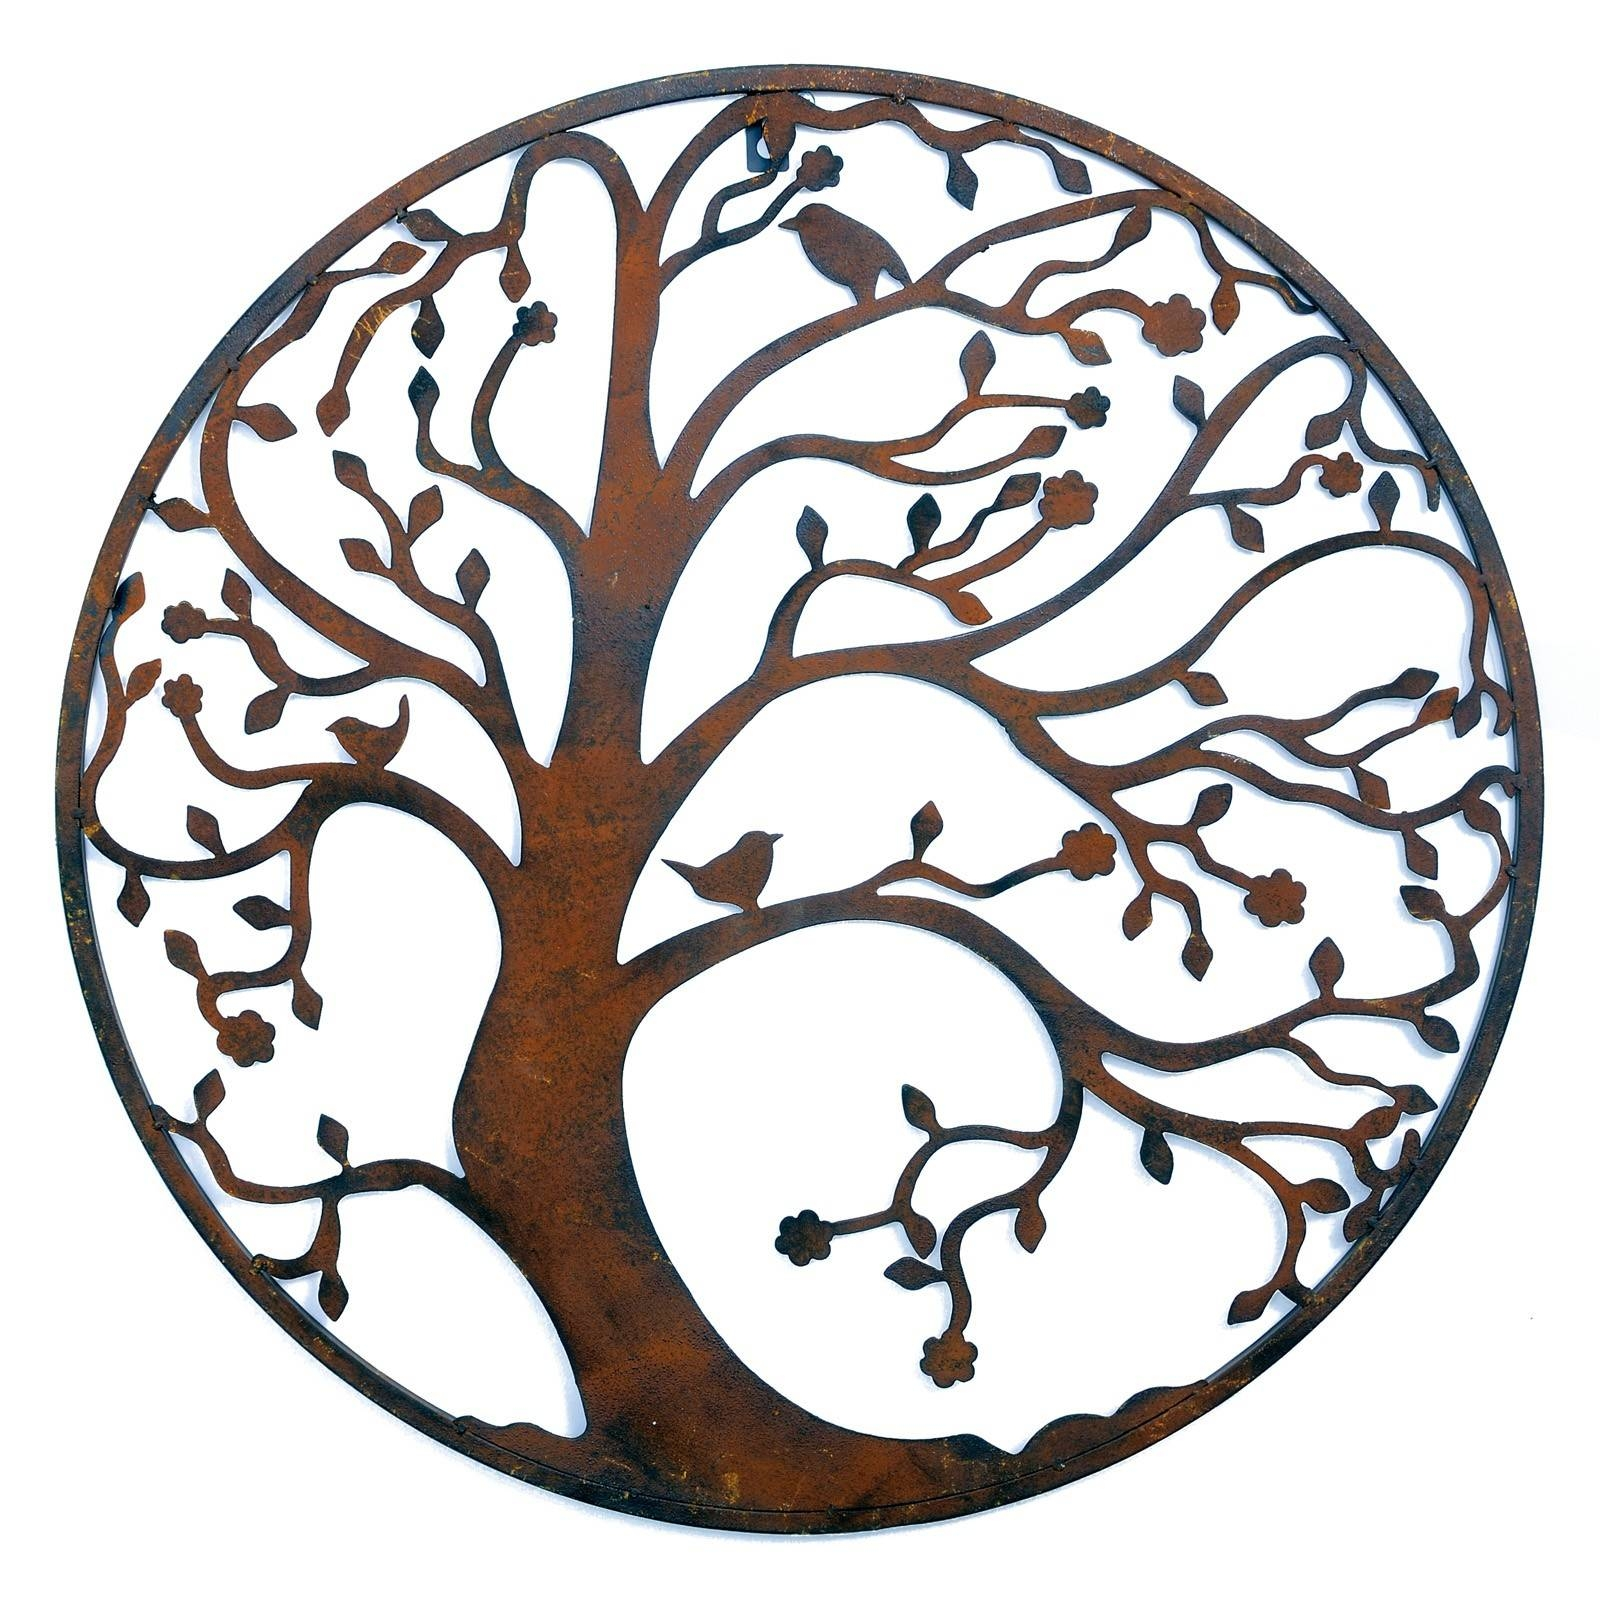 Wall Art Designs: Rusted Classic Design Tree Leaf Branch Birds In Most Popular Circular Metal Wall Art (View 15 of 20)